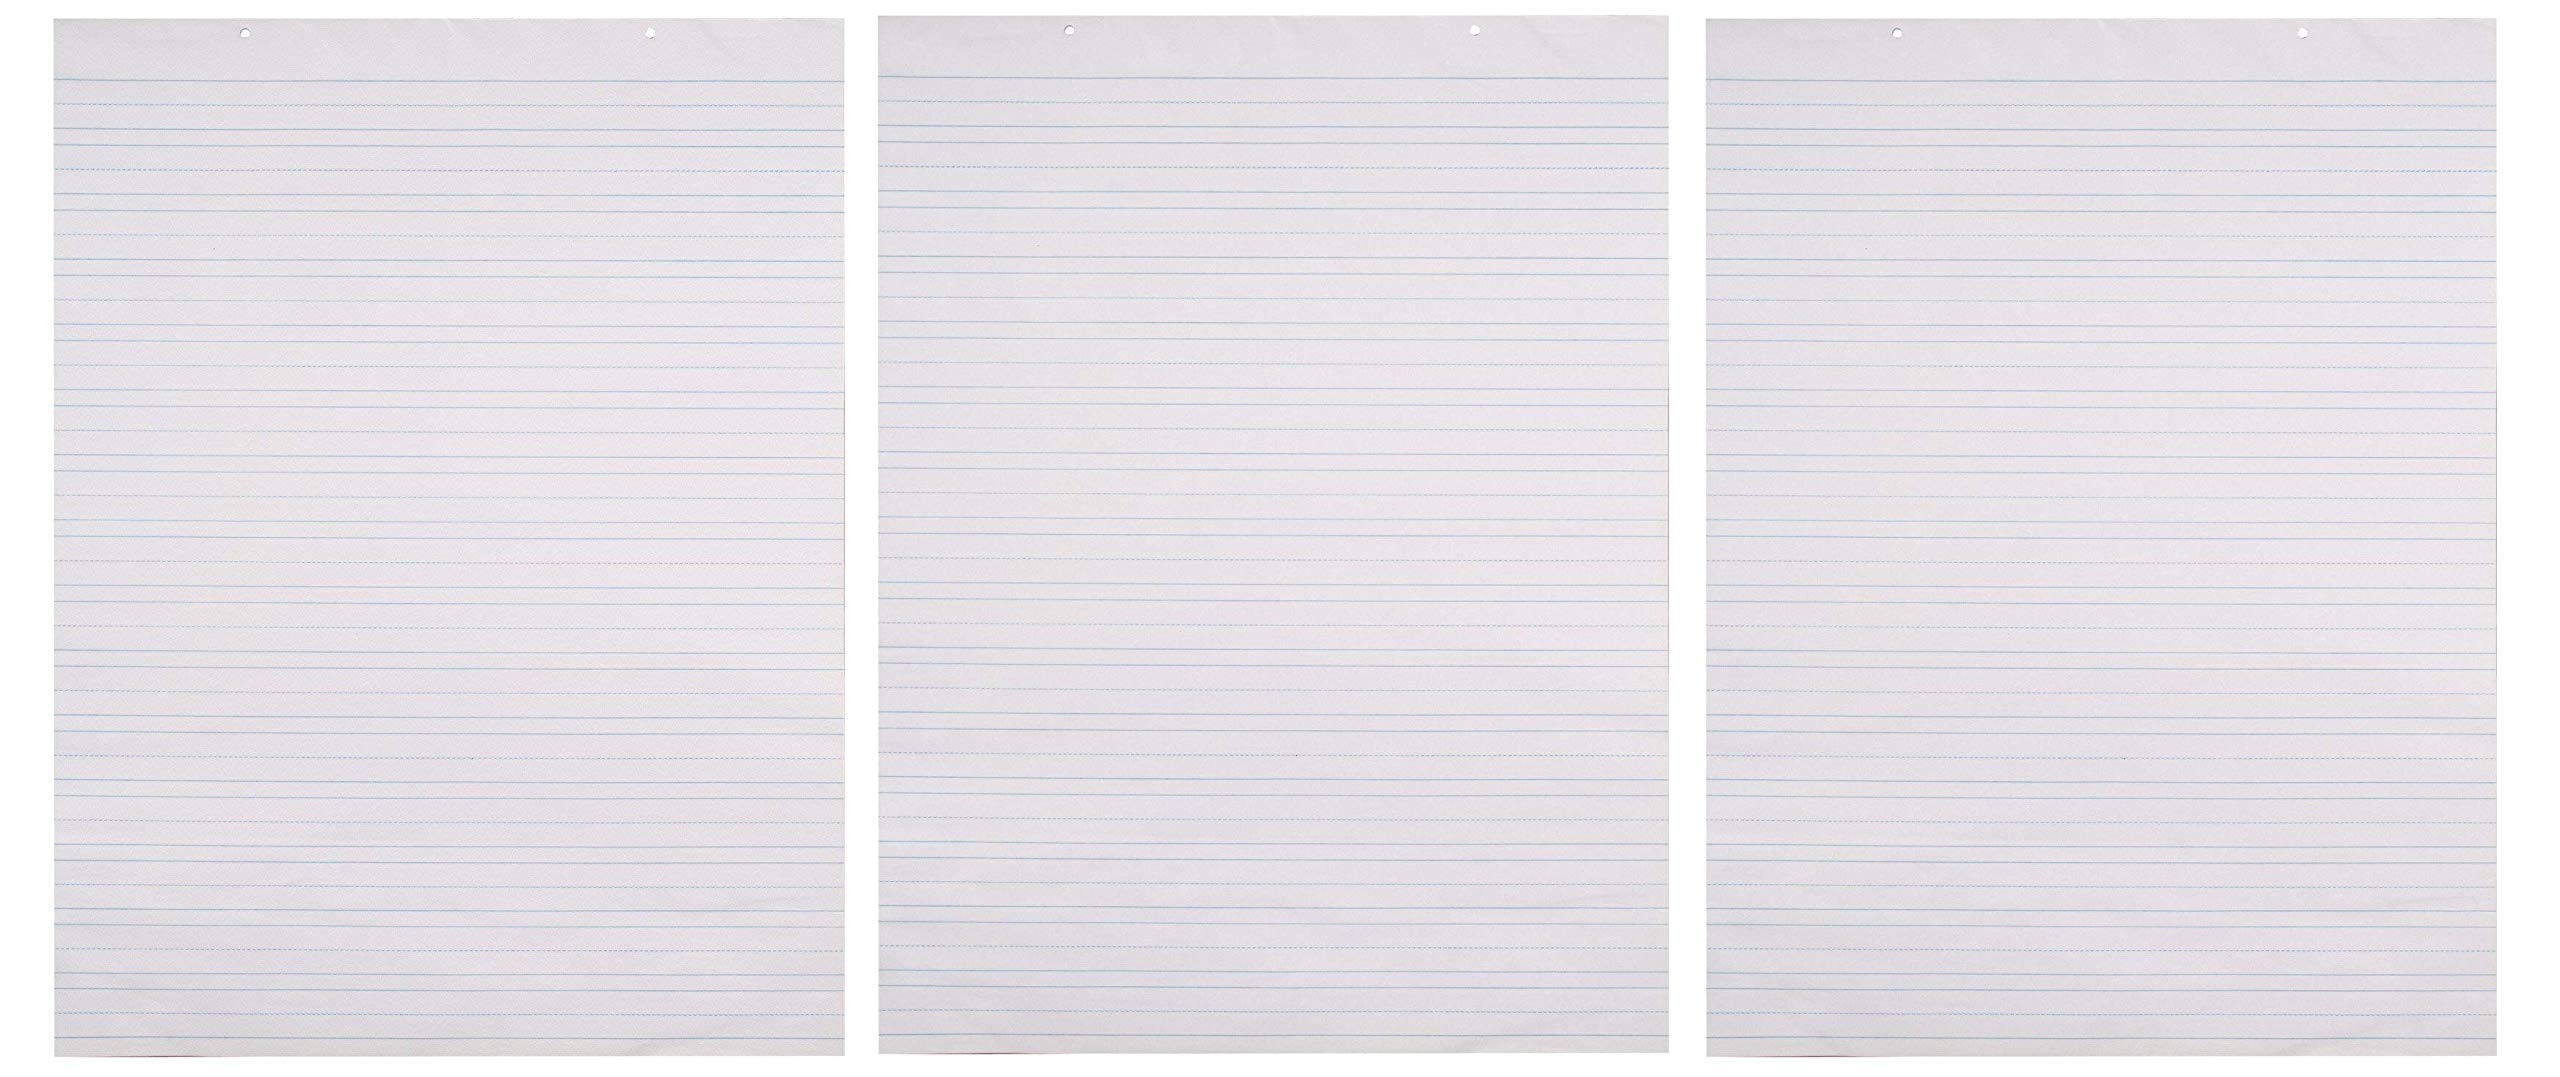 School Smart Chart Paper Pad, 24 x 32 Inches, Ruled 1-1/2 Inch, White, 70 Sheets (Тhrее Pаck) by School Smart (Image #1)